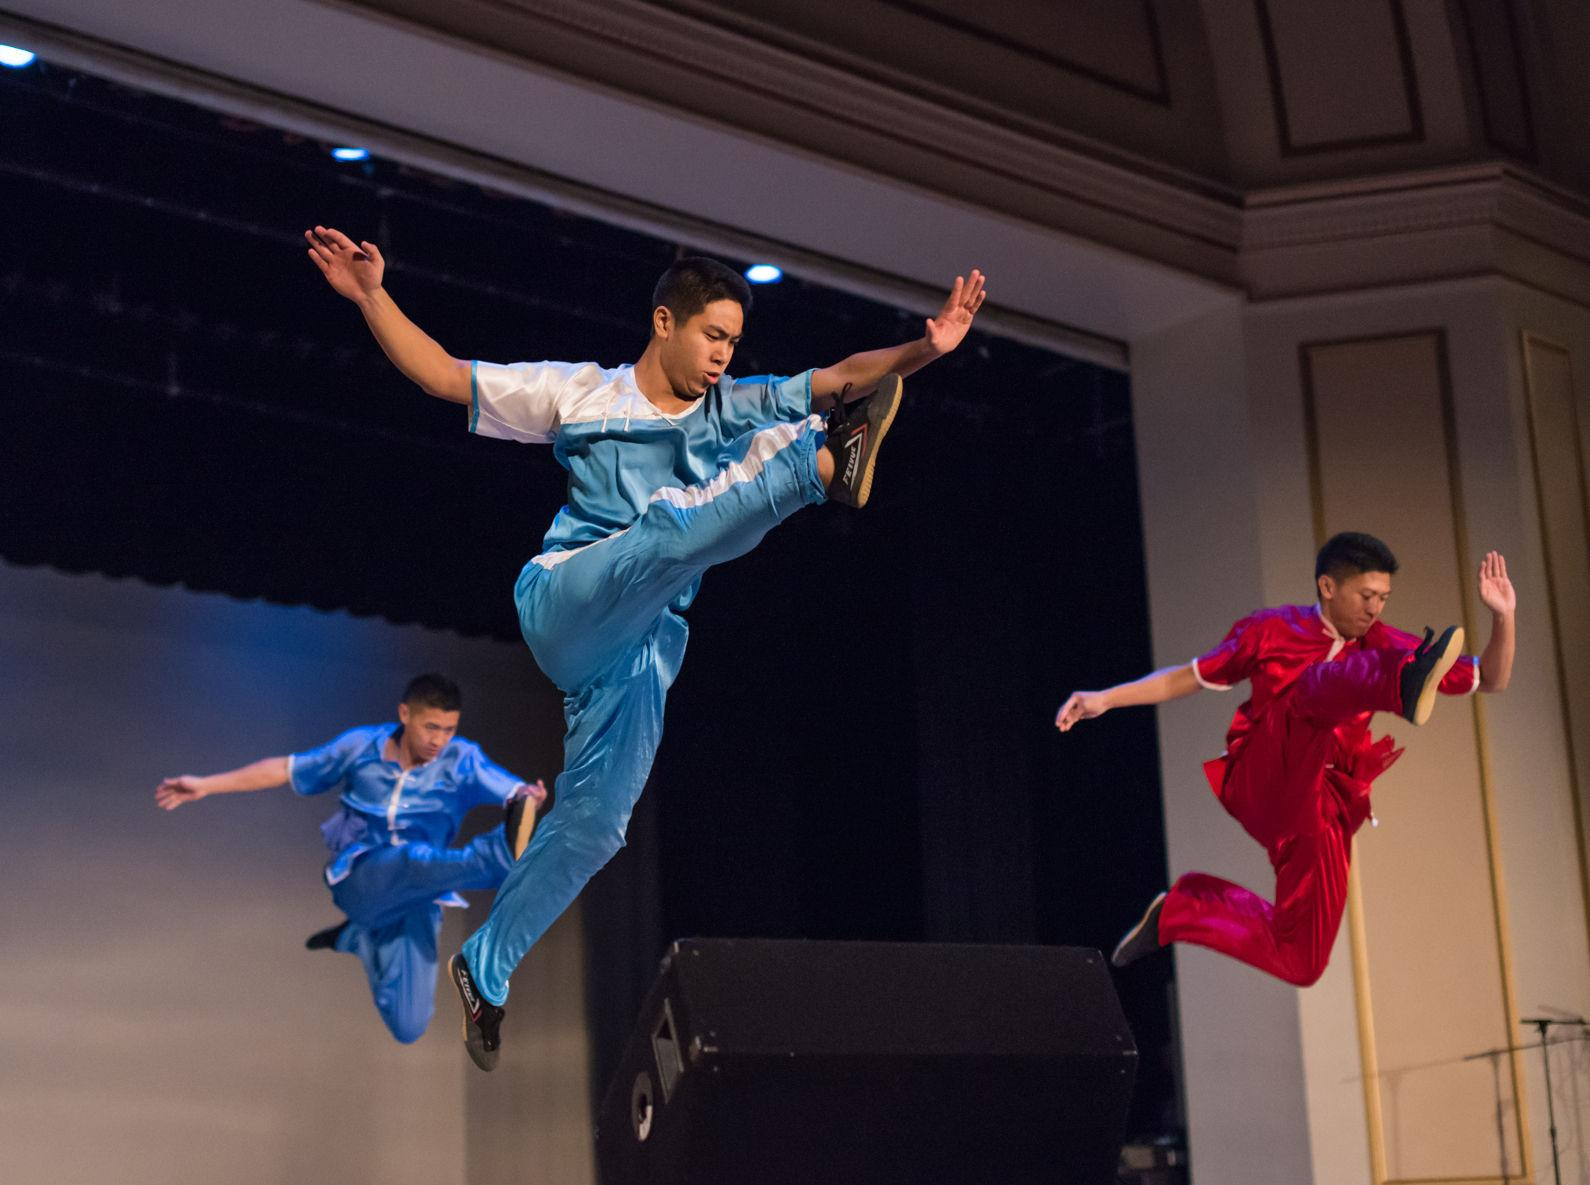 The Wushu Club performs martial arts at the annual Moon Gala, a Chinese cultural event to celebrate the Mid-Autumn festival.